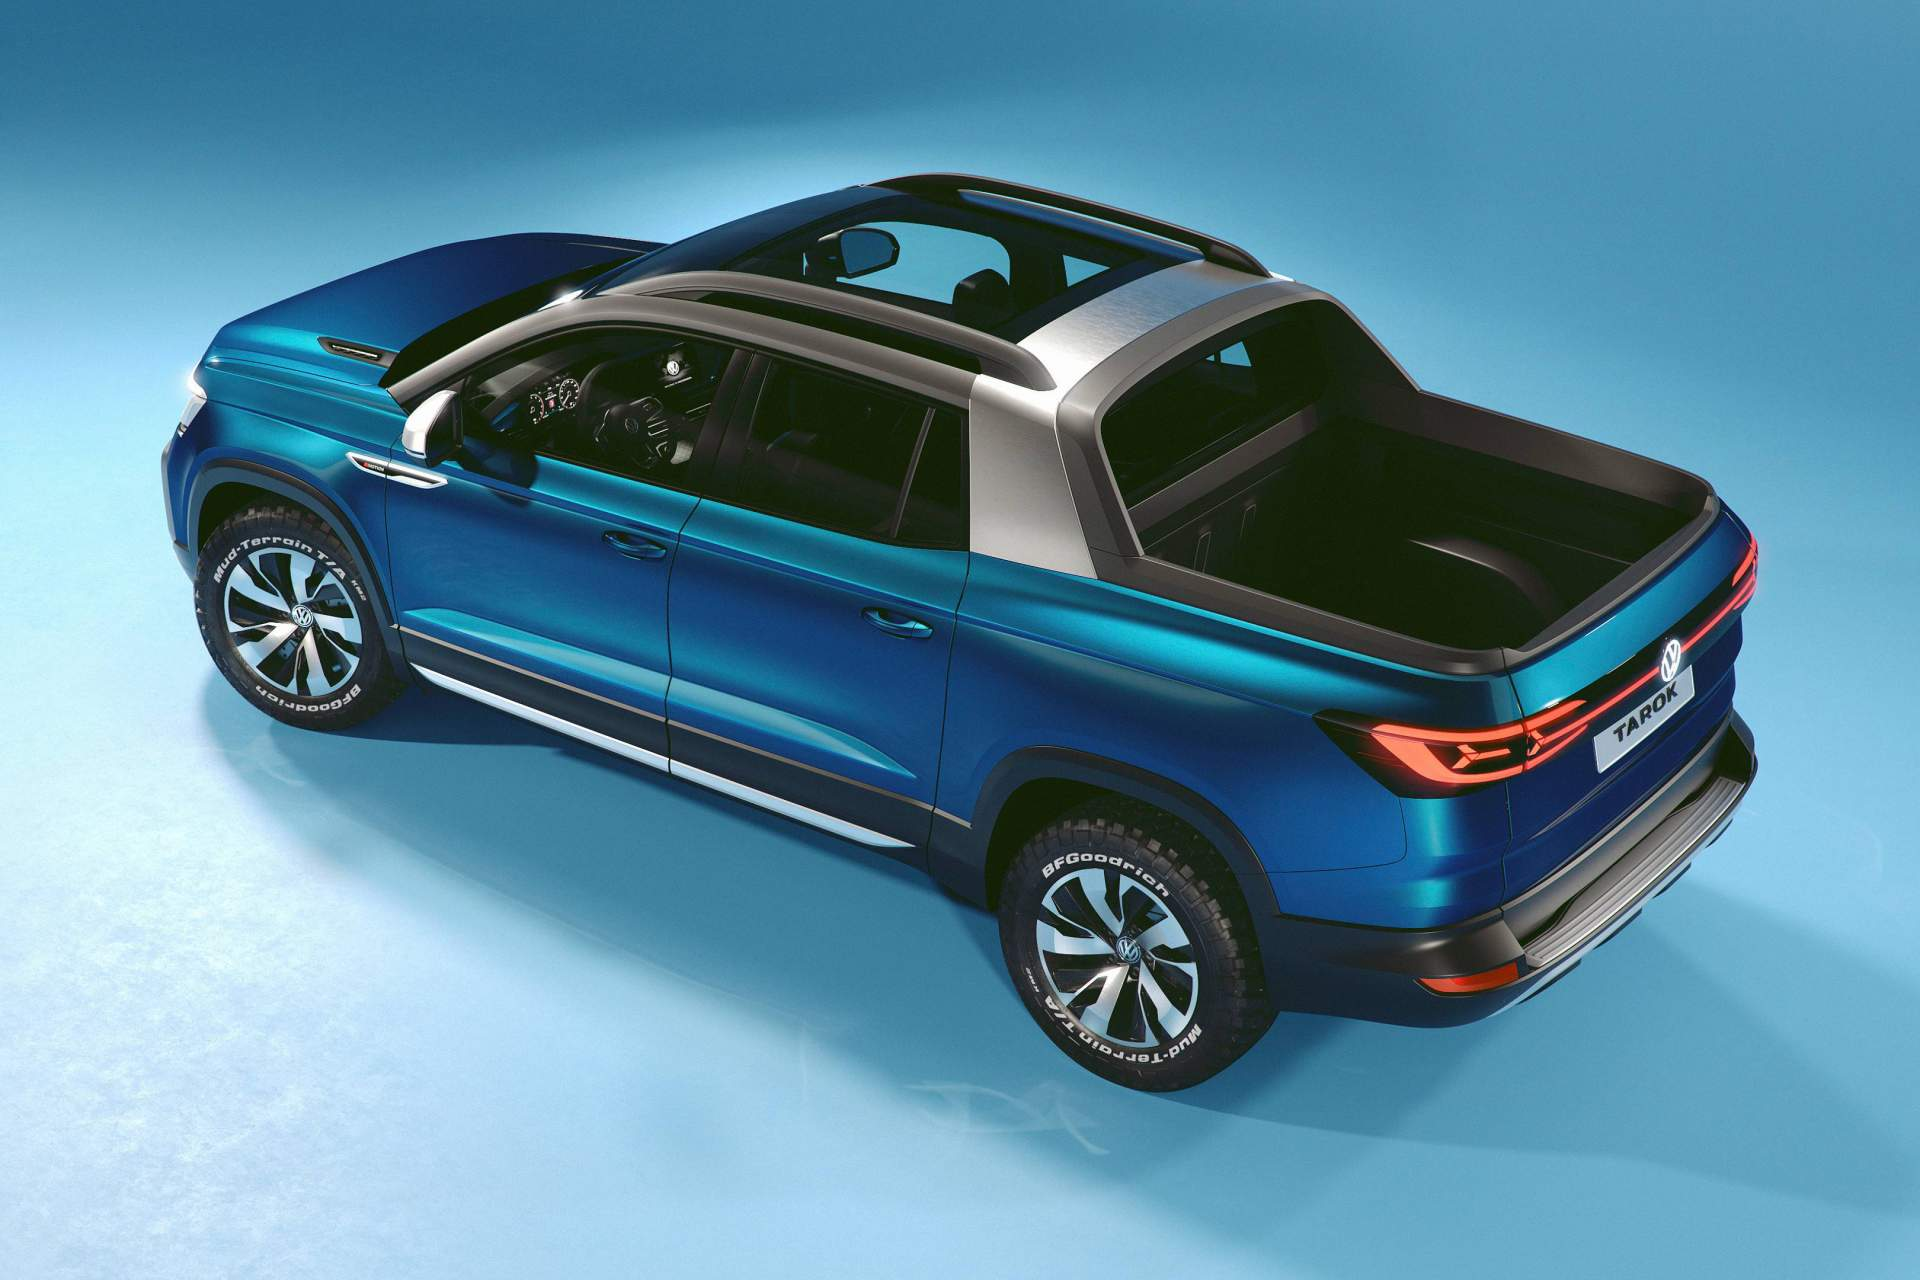 Volkswagen Tarok pick-up concept unveiled in Brazil